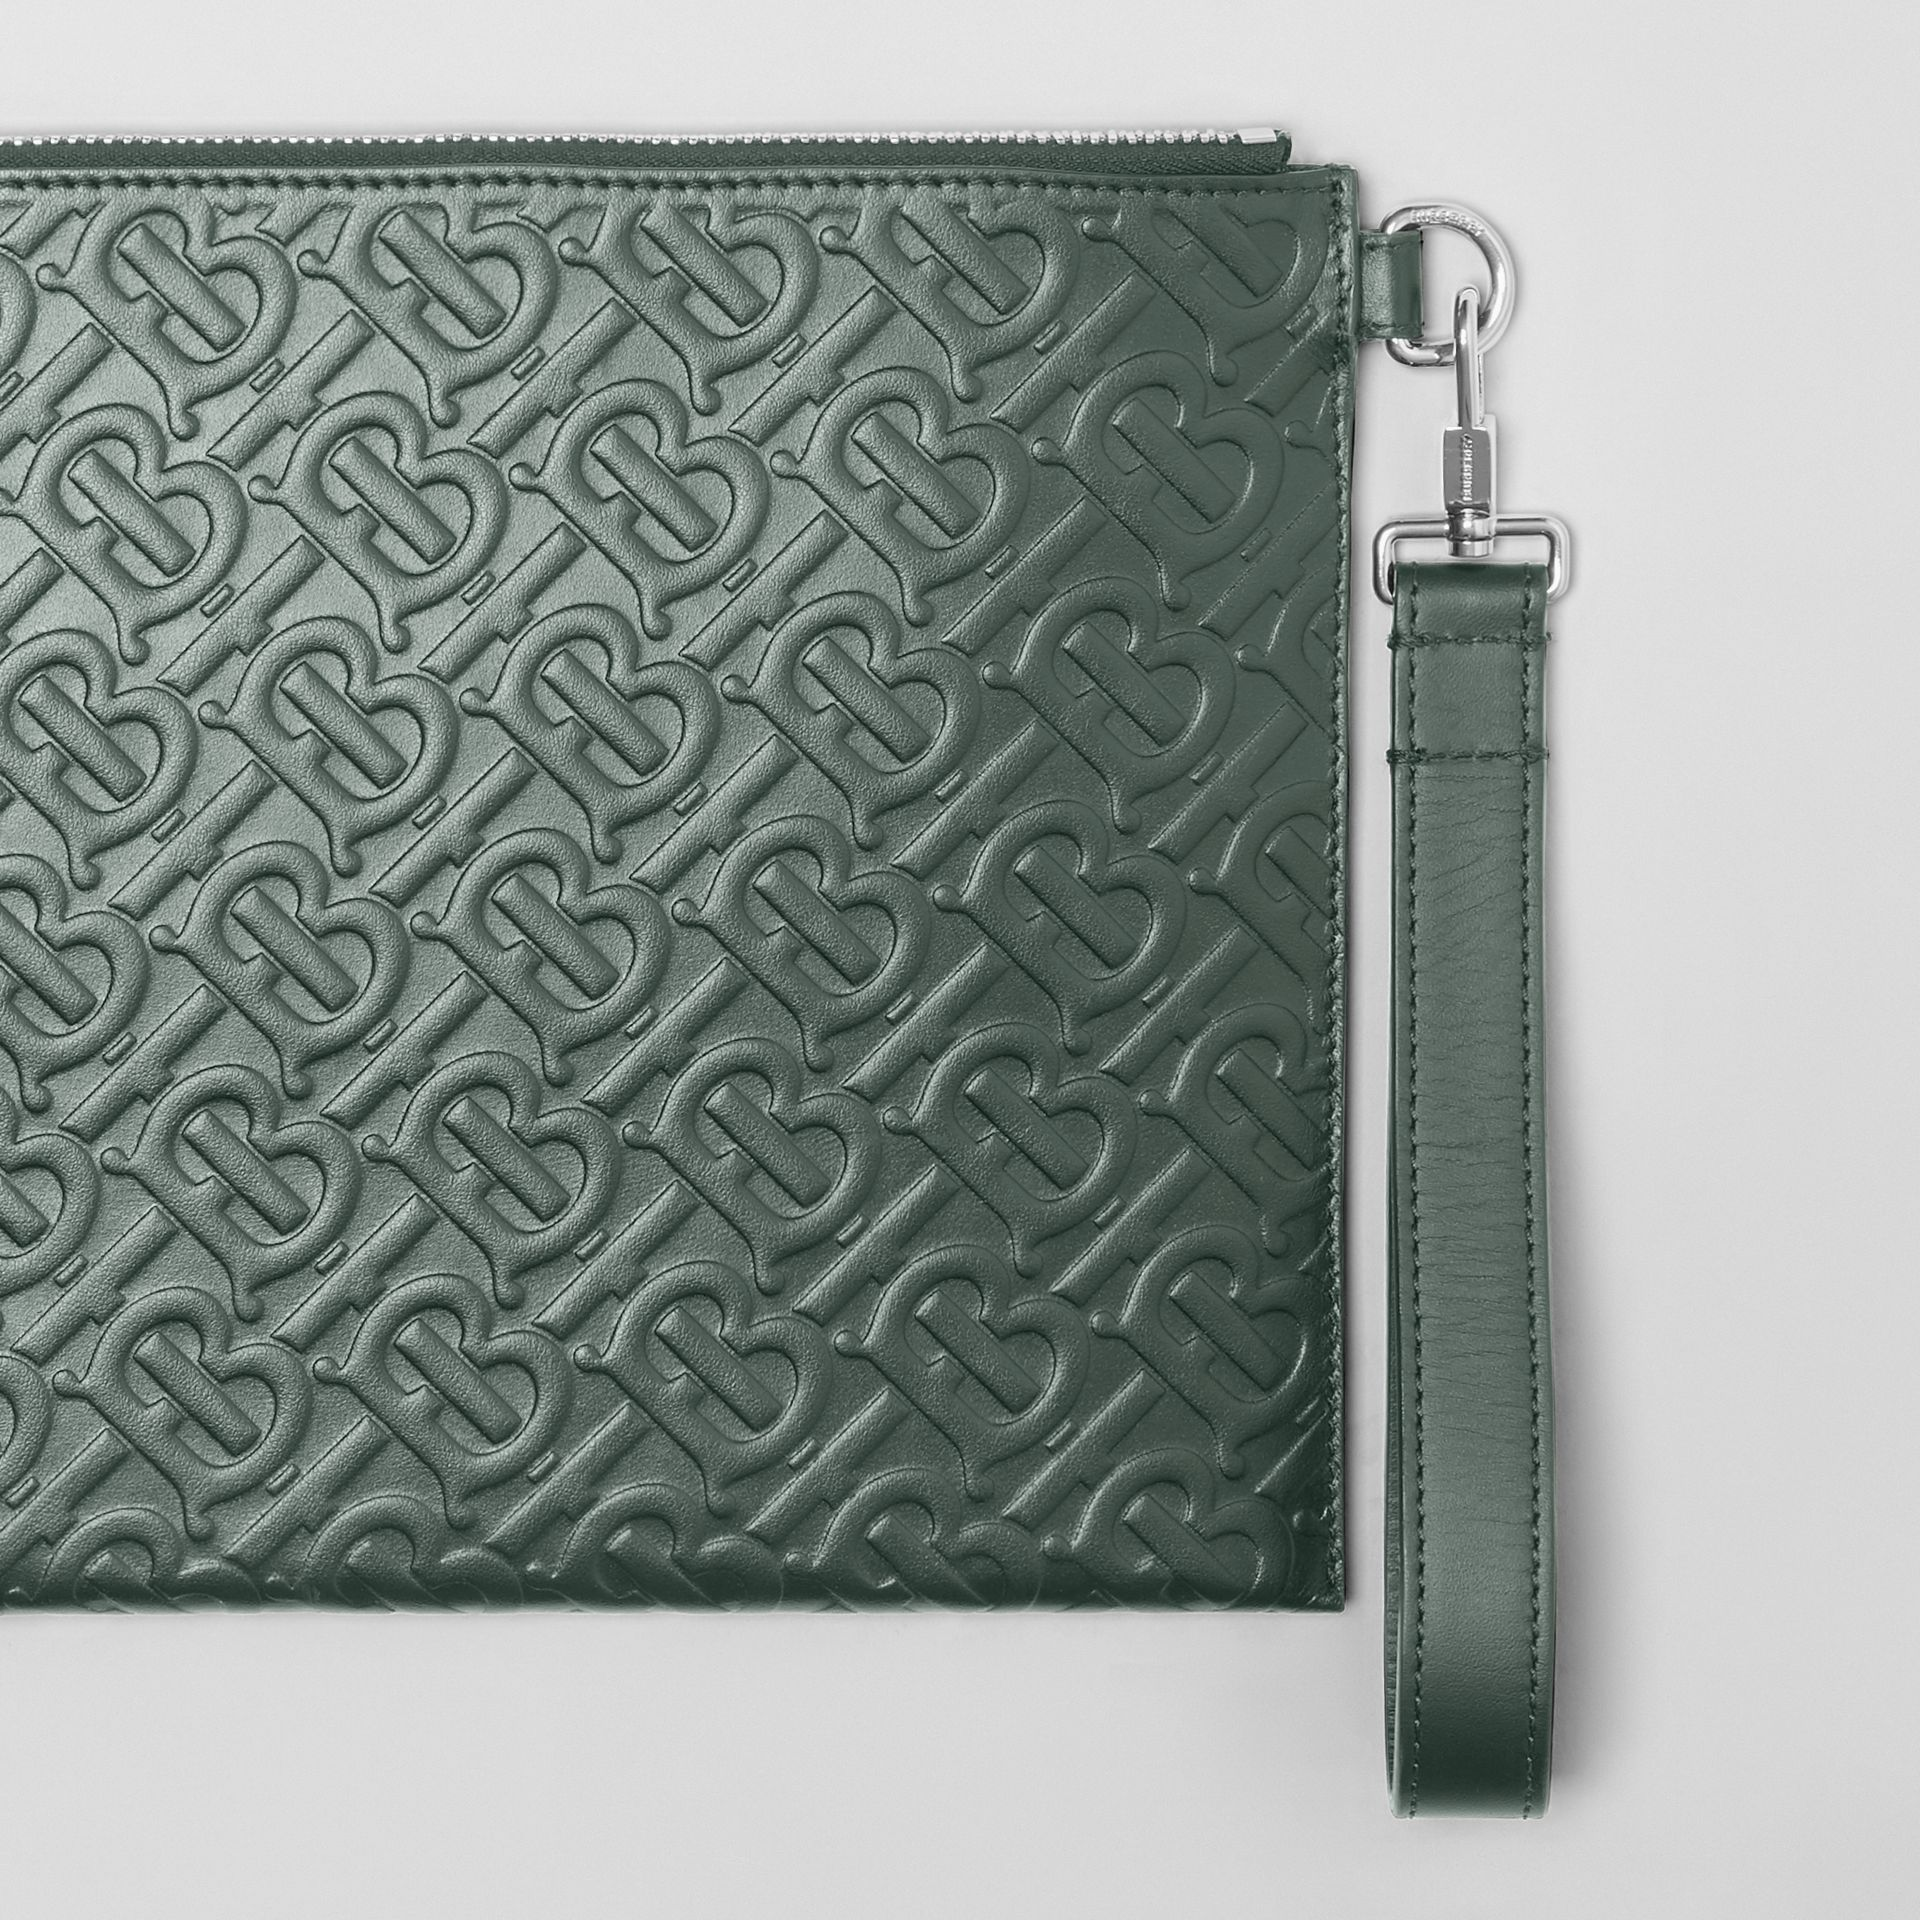 Monogram Leather Zip Pouch in Dark Pine Green - Men | Burberry Hong Kong S.A.R - gallery image 1